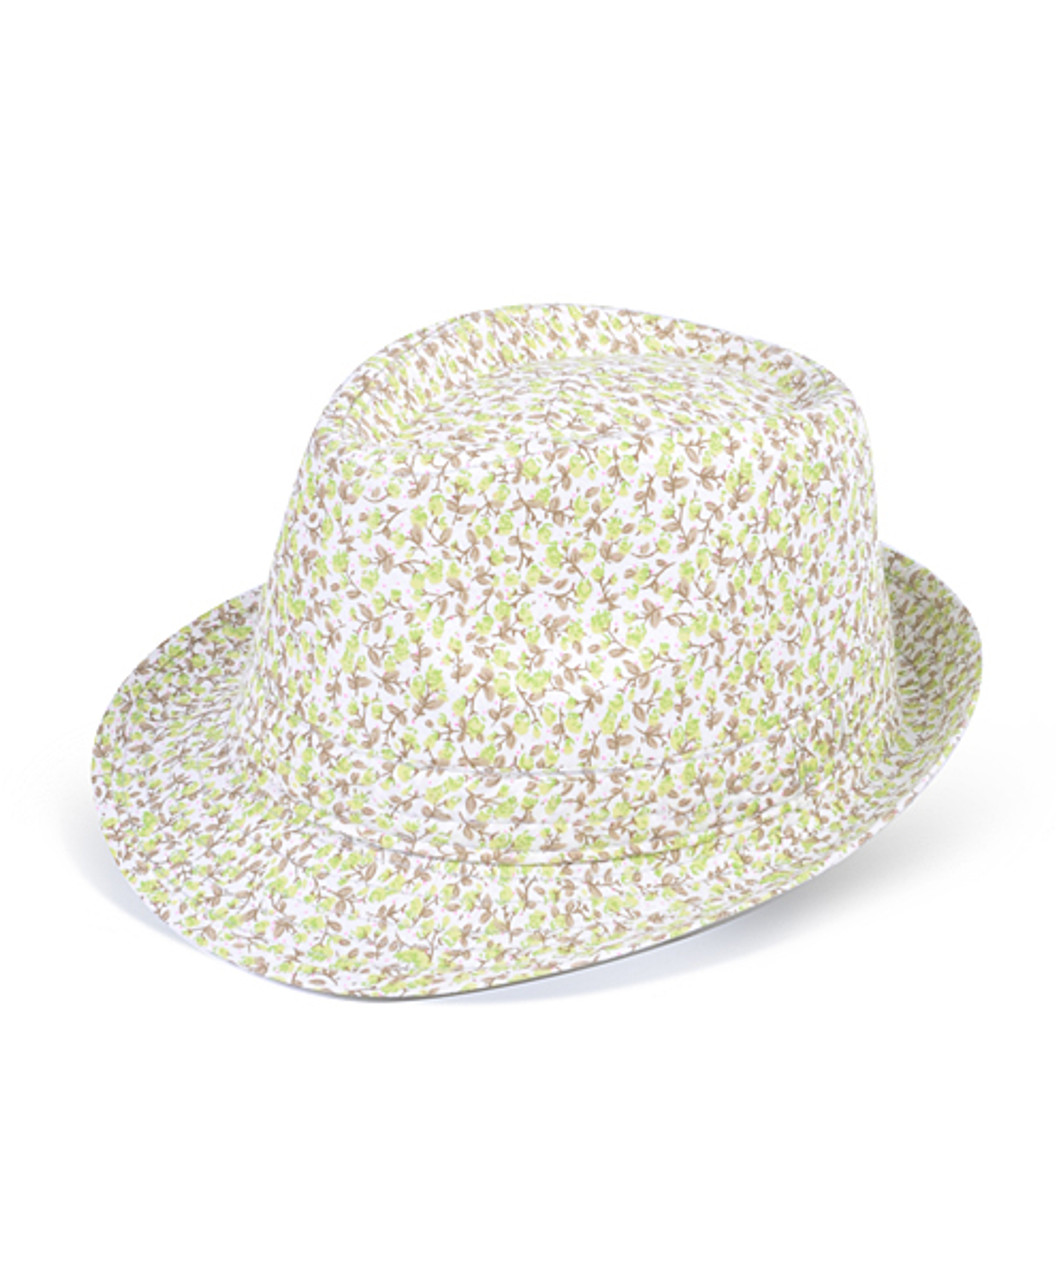 ... 60pc Mixed Unisex Floral Fedora Hats H7800-CO ... f063f7ae17e3